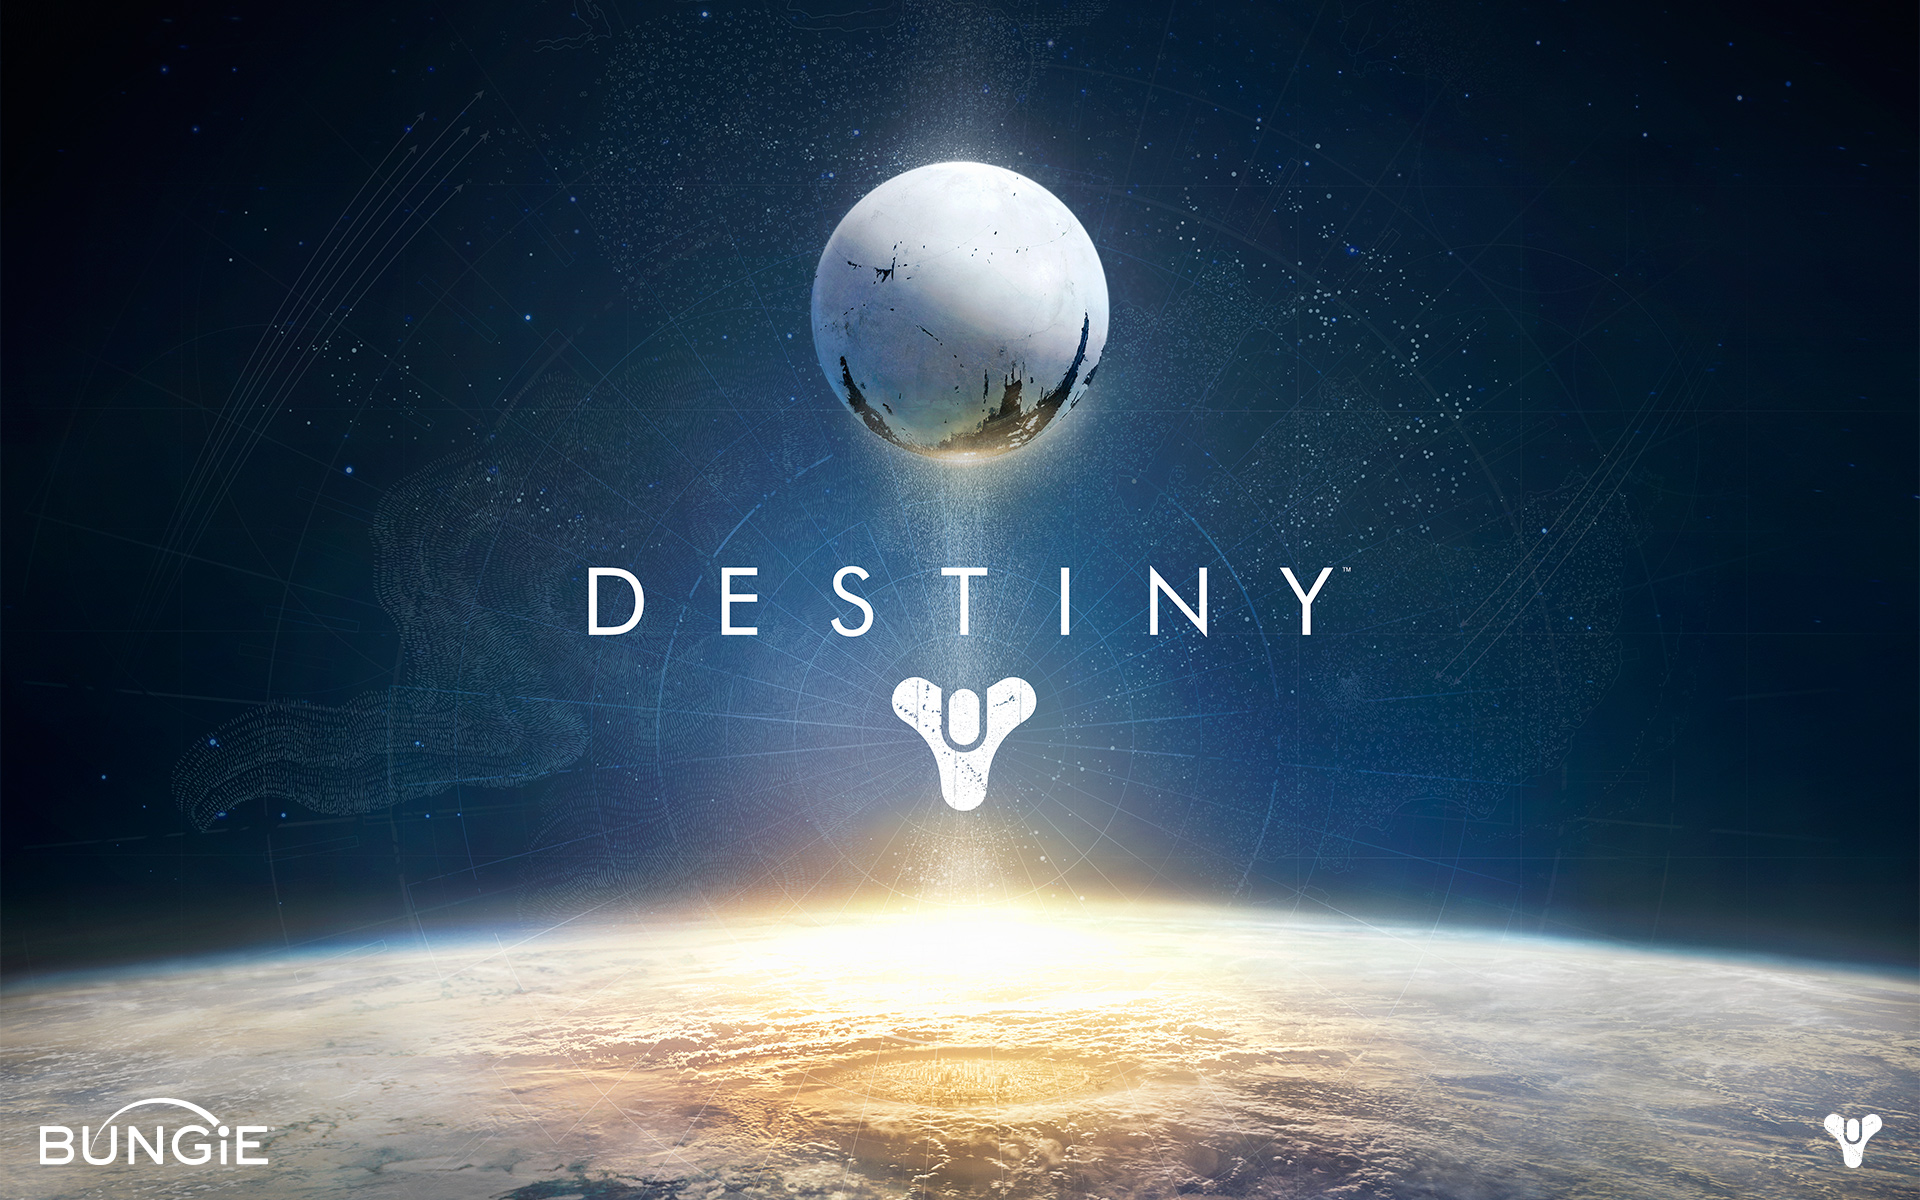 This is why 'Destiny' studio Bungie stopped making 'Halo' games